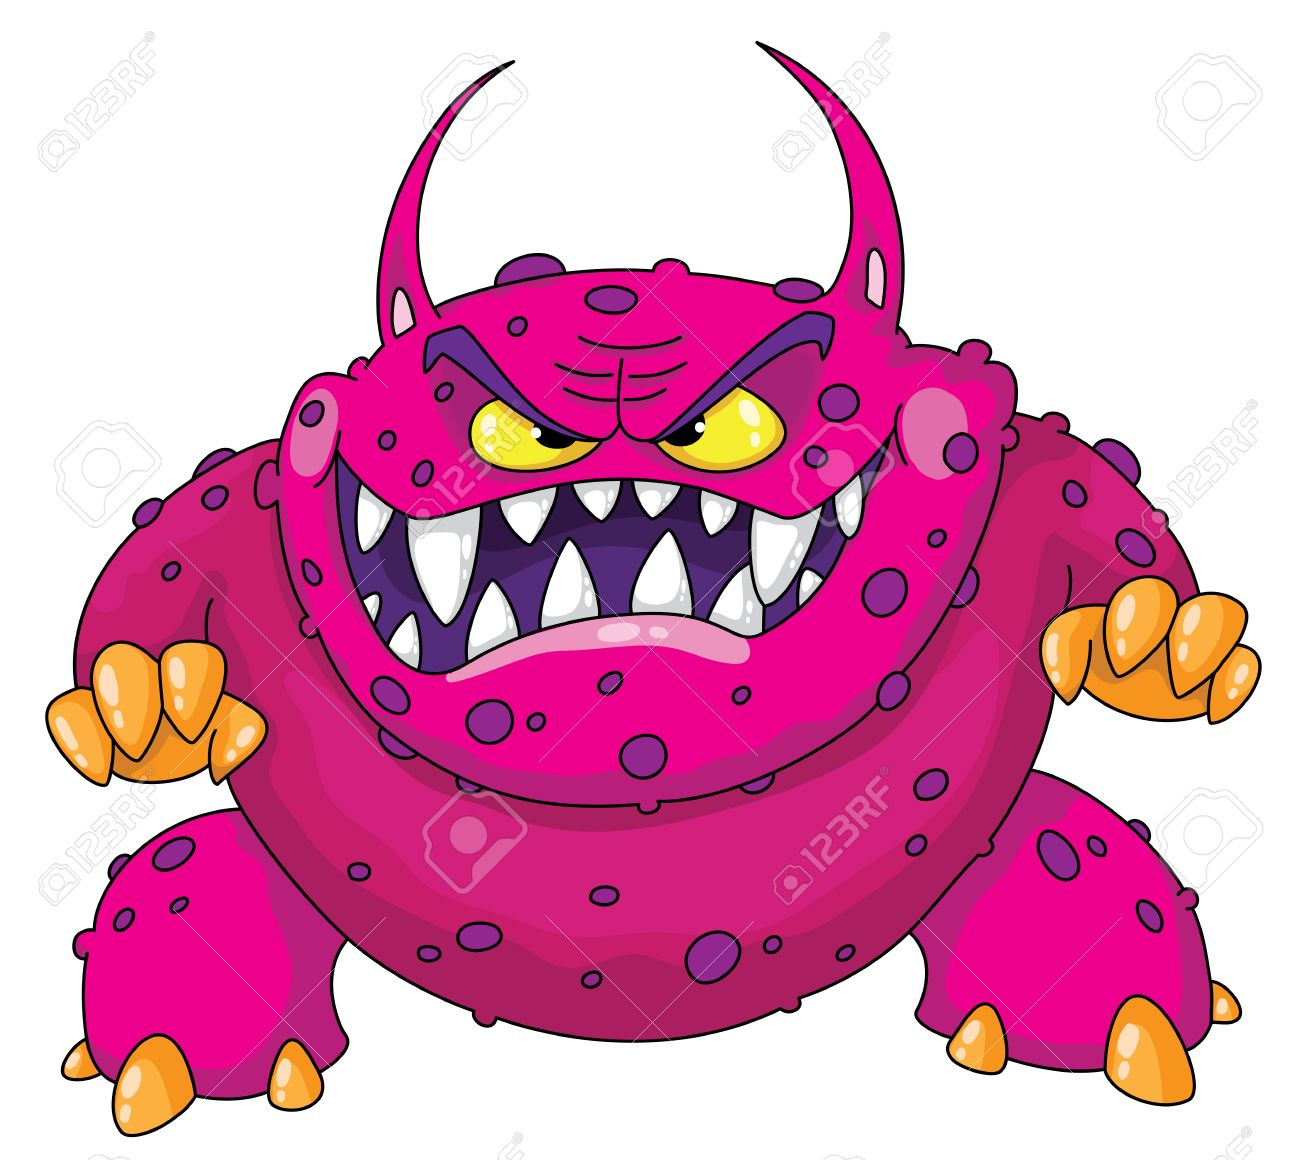 Illustration of a angry monster Stock Vector - 11514527